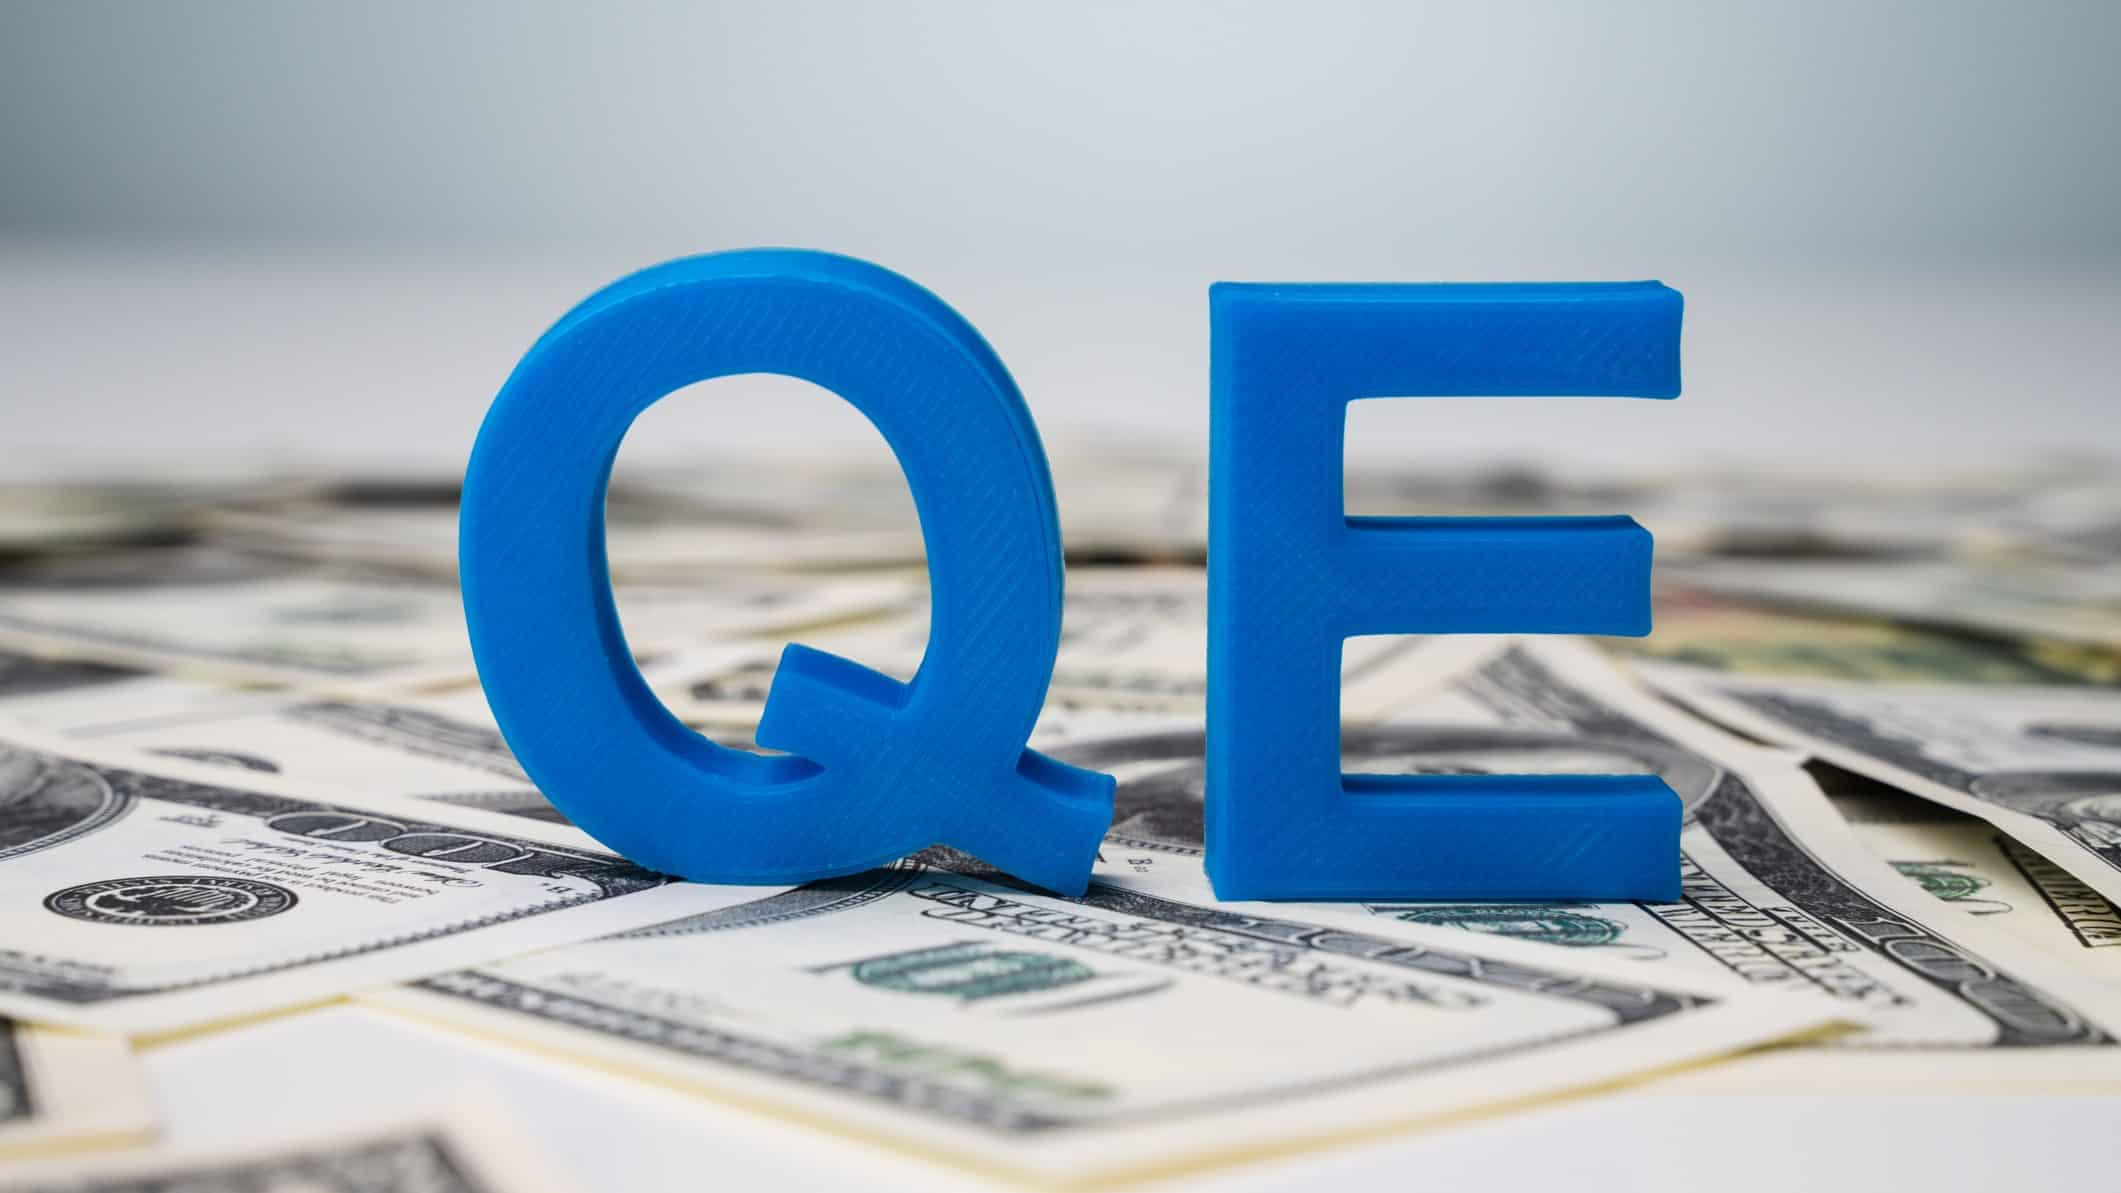 quantitative easing represented by letters QE sitting on piles of cash